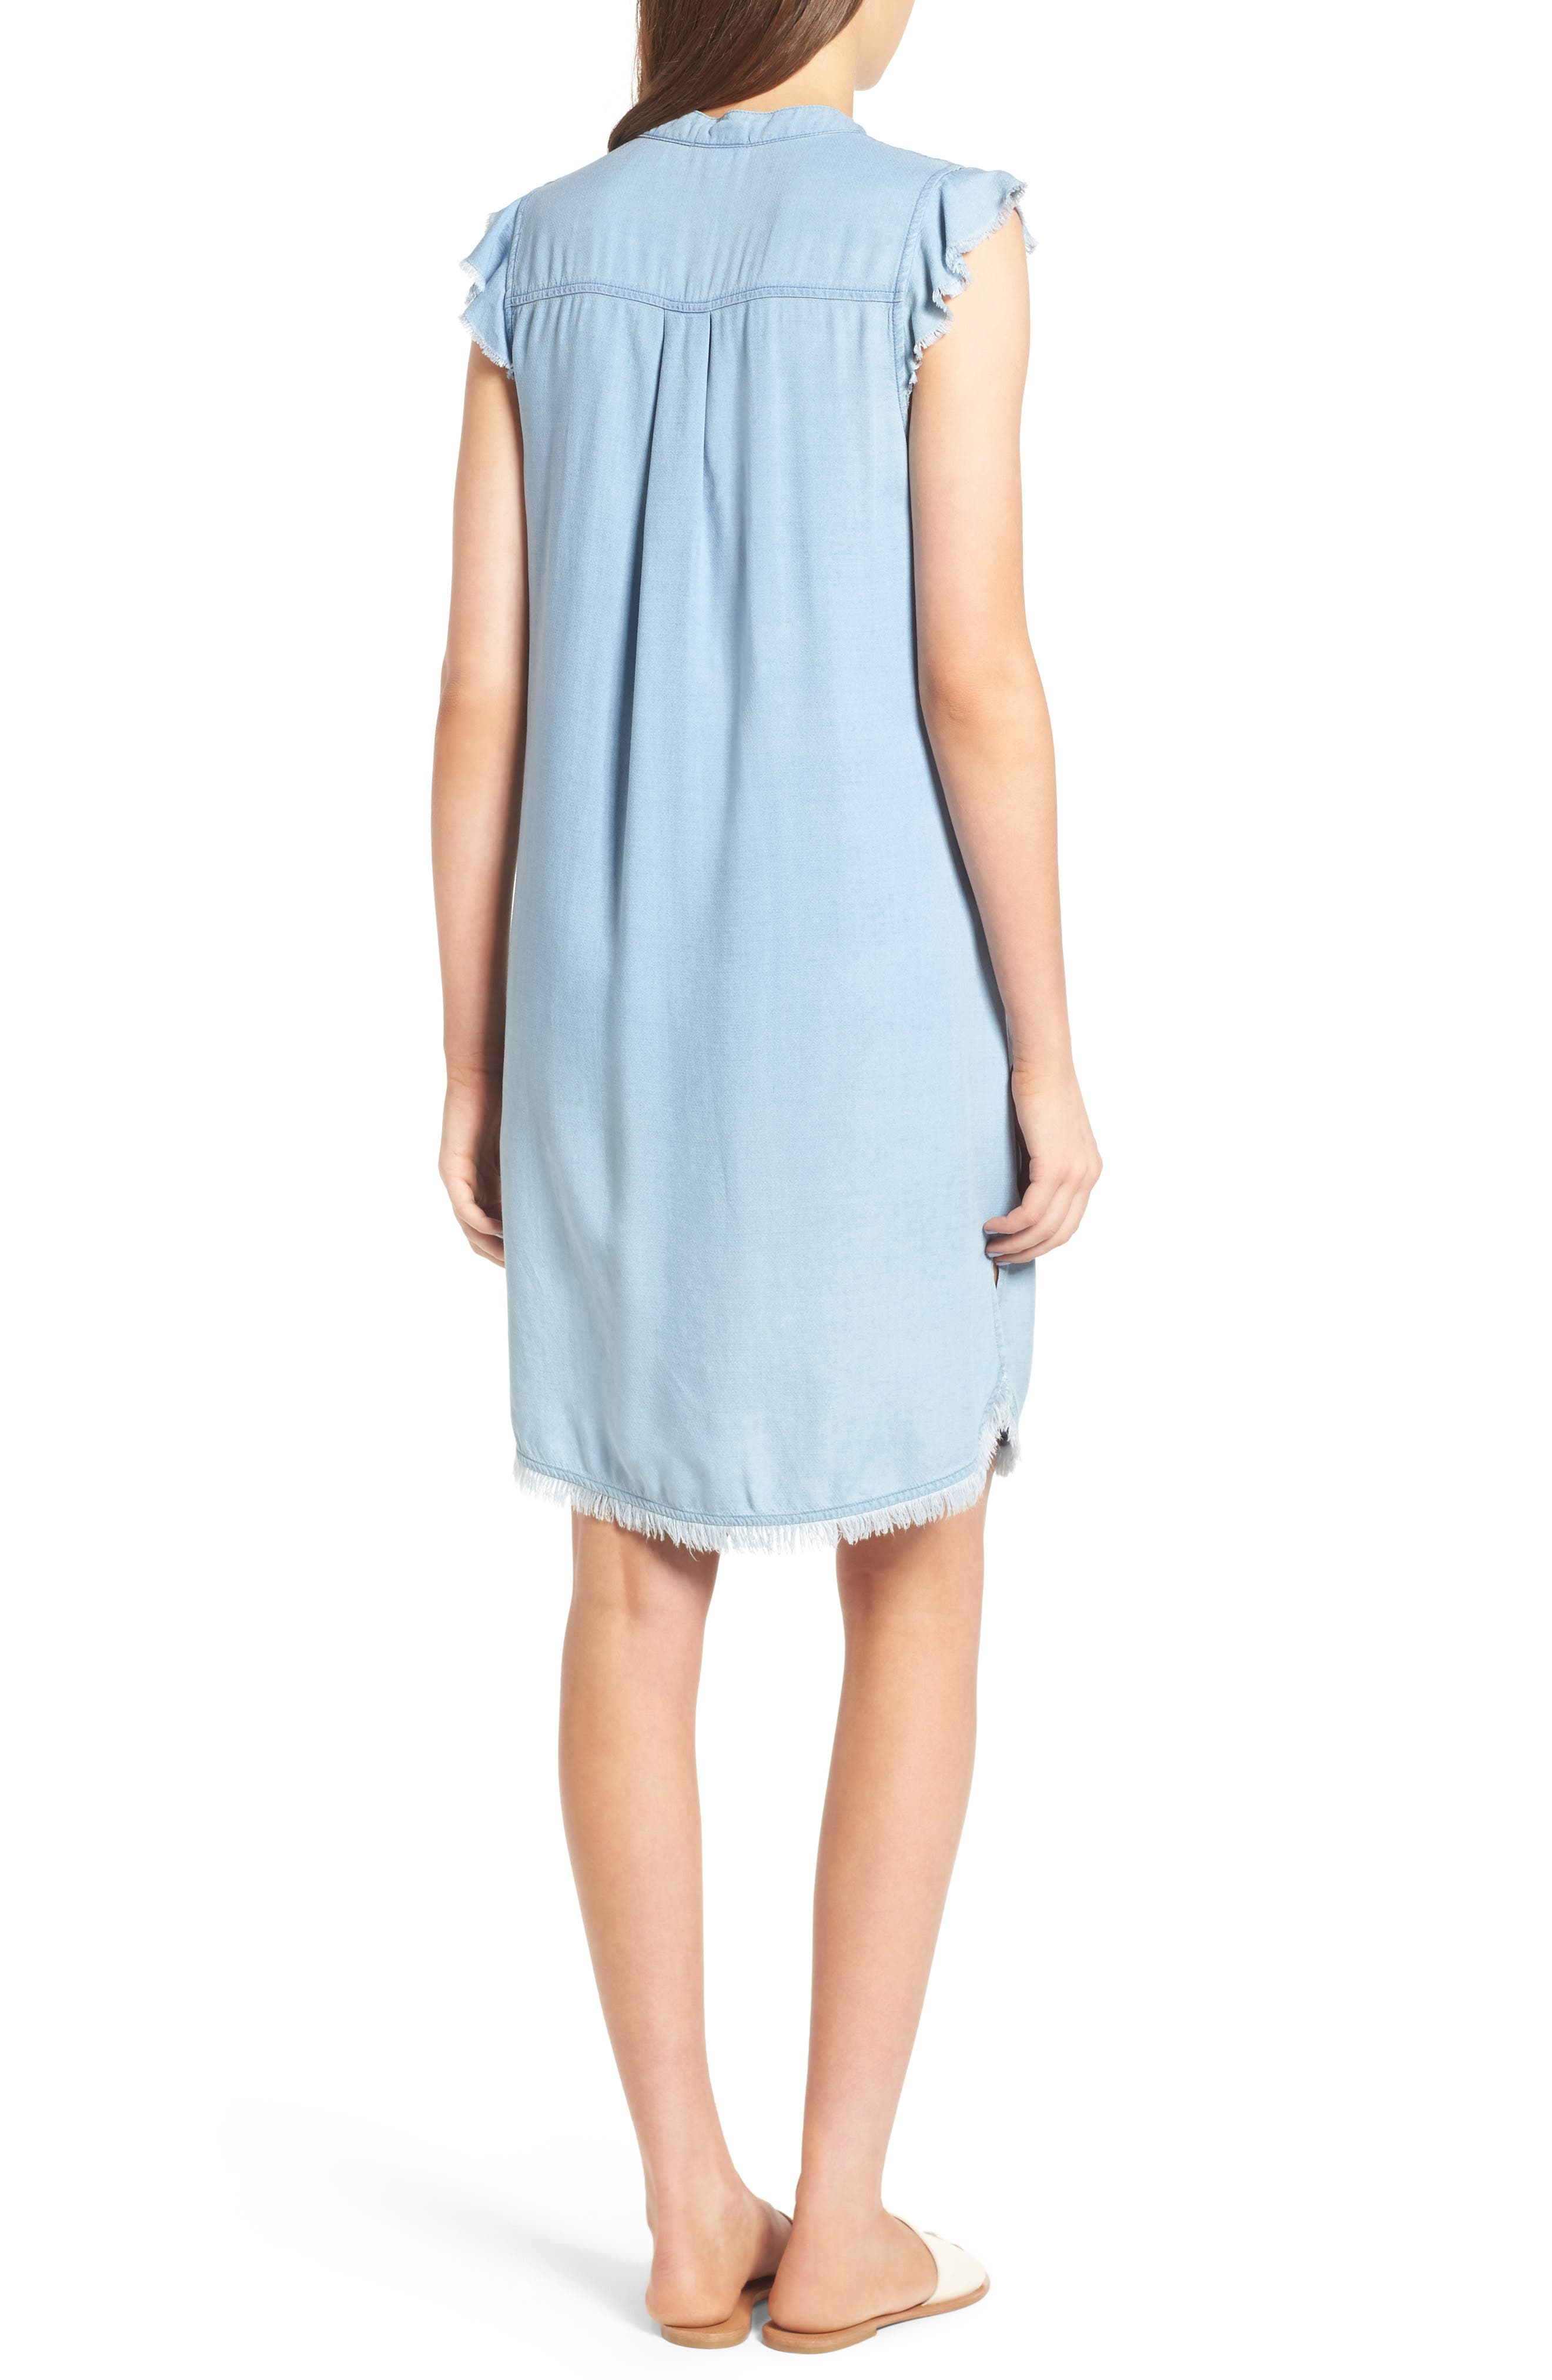 SPLENDID, Chambray Shift Dress, Alternate thumbnail 2, color, 400